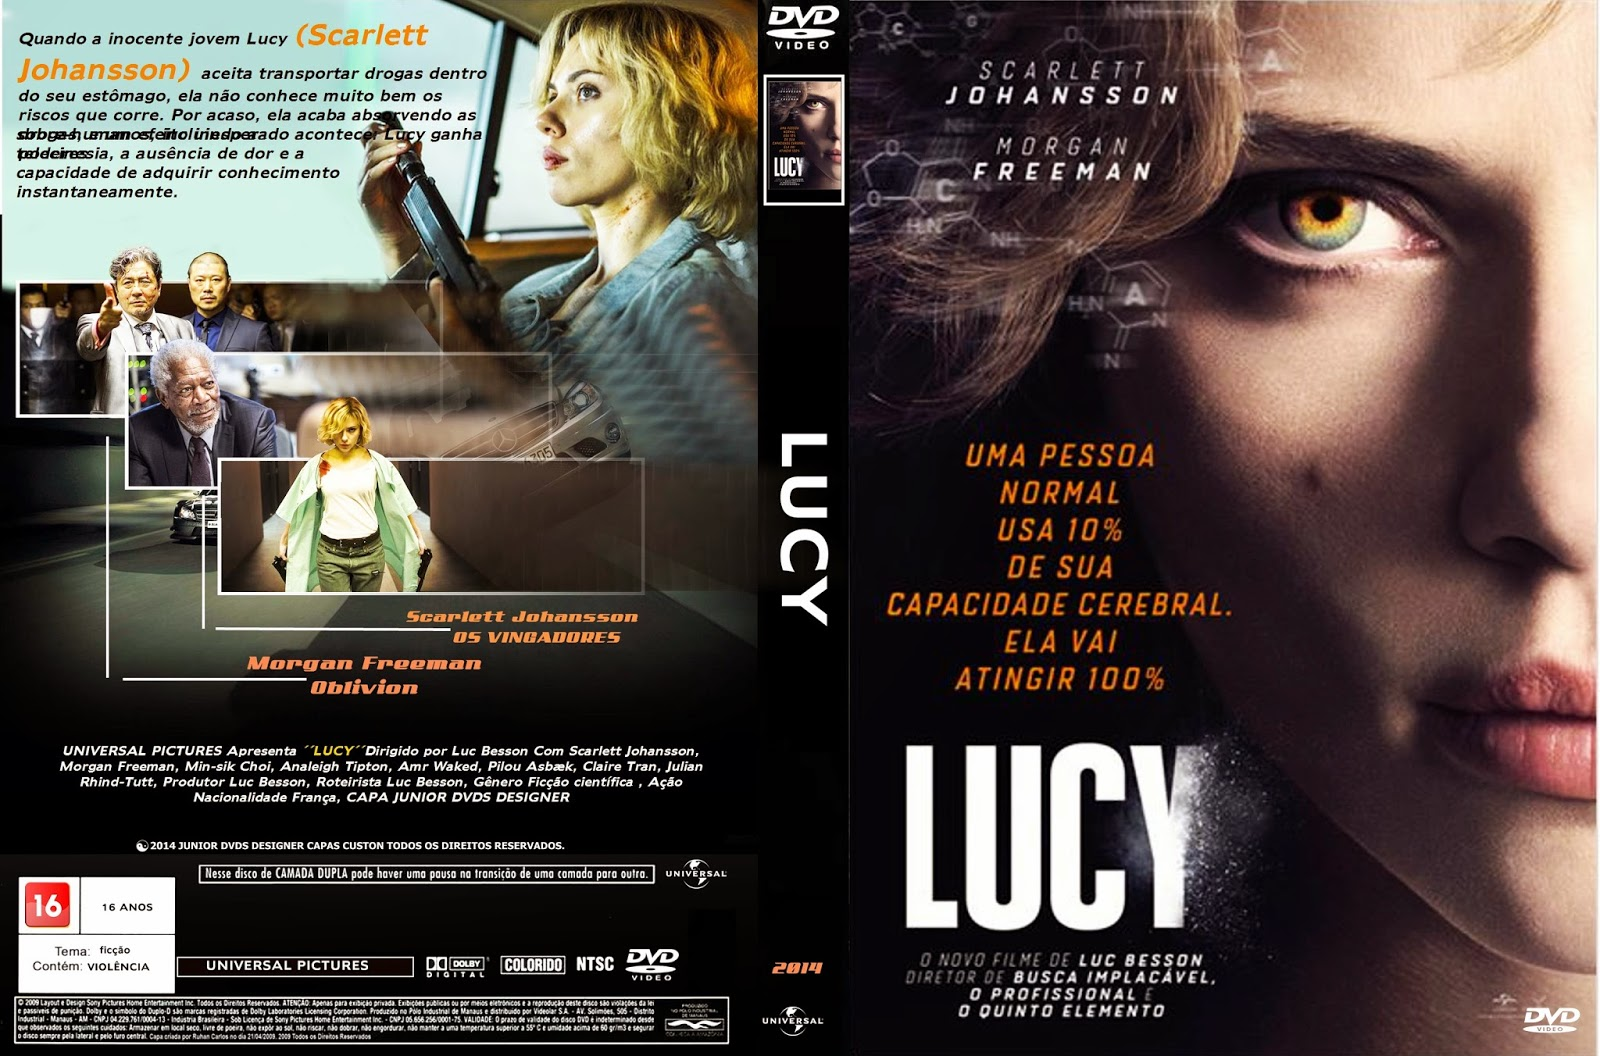 Lucy Movie 2014 Dvd Cover Wide Open Throttle Episode 1